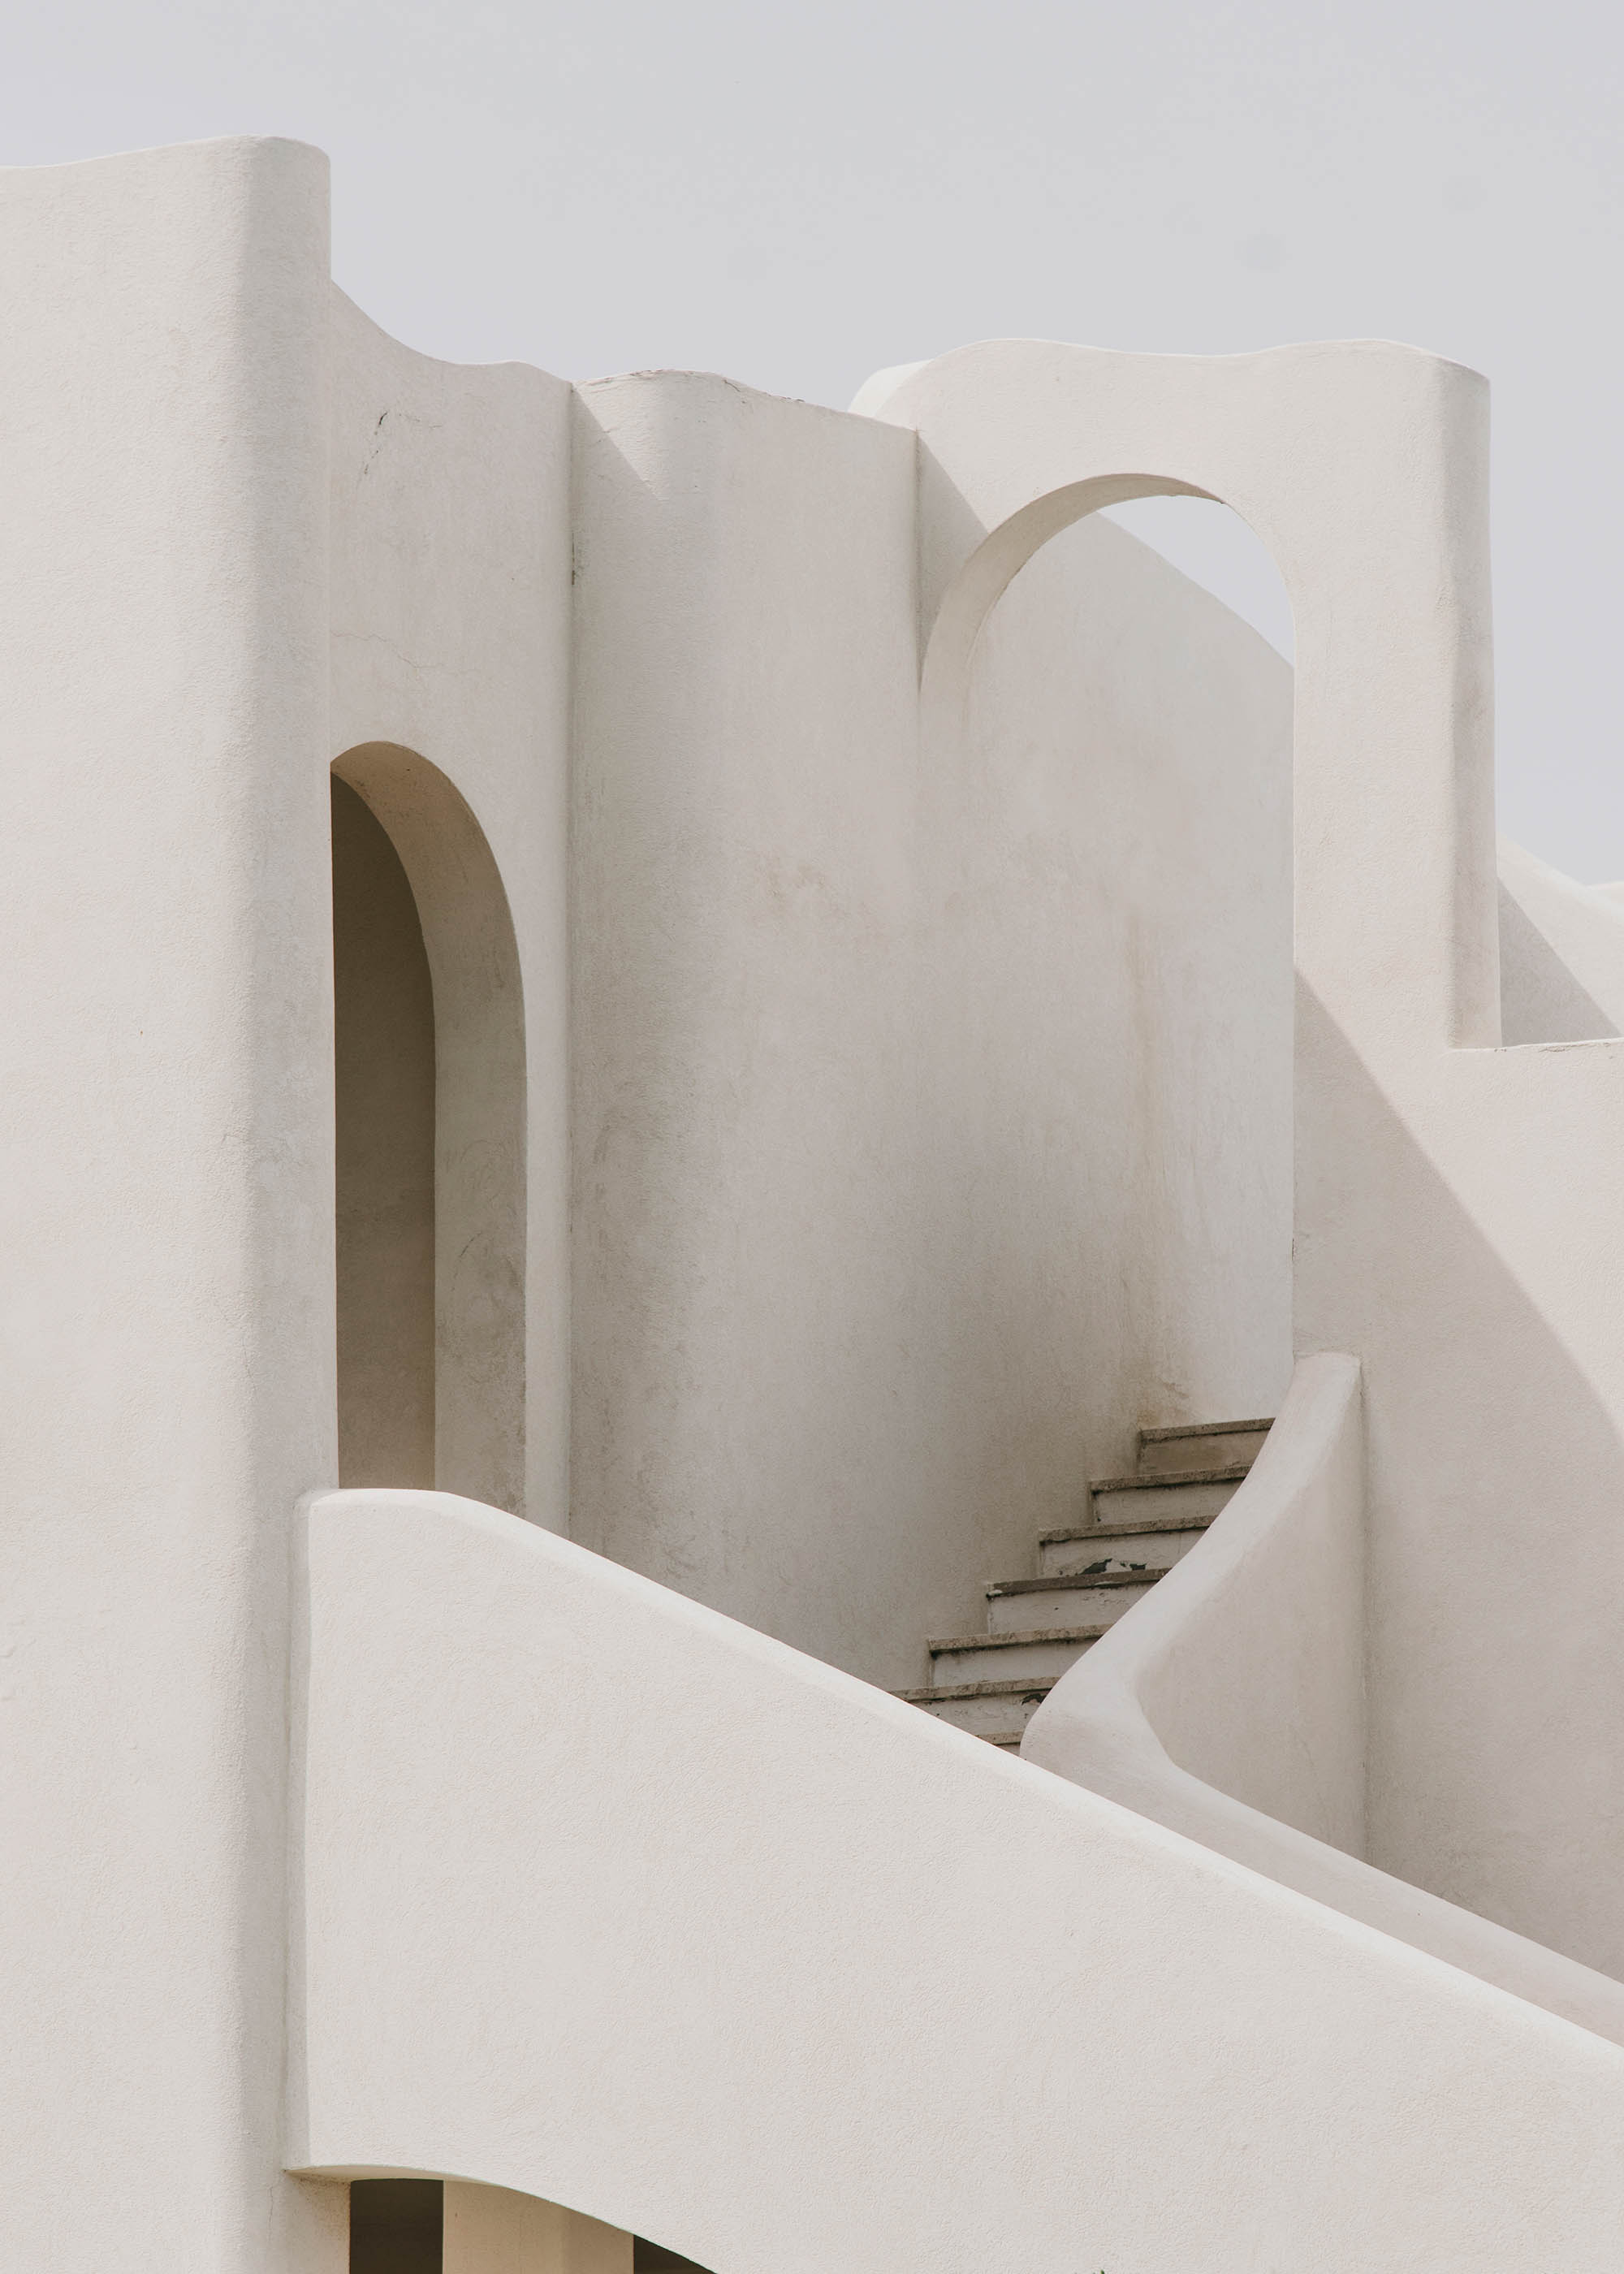 #personal #italy #puglia #travel #architecture #white